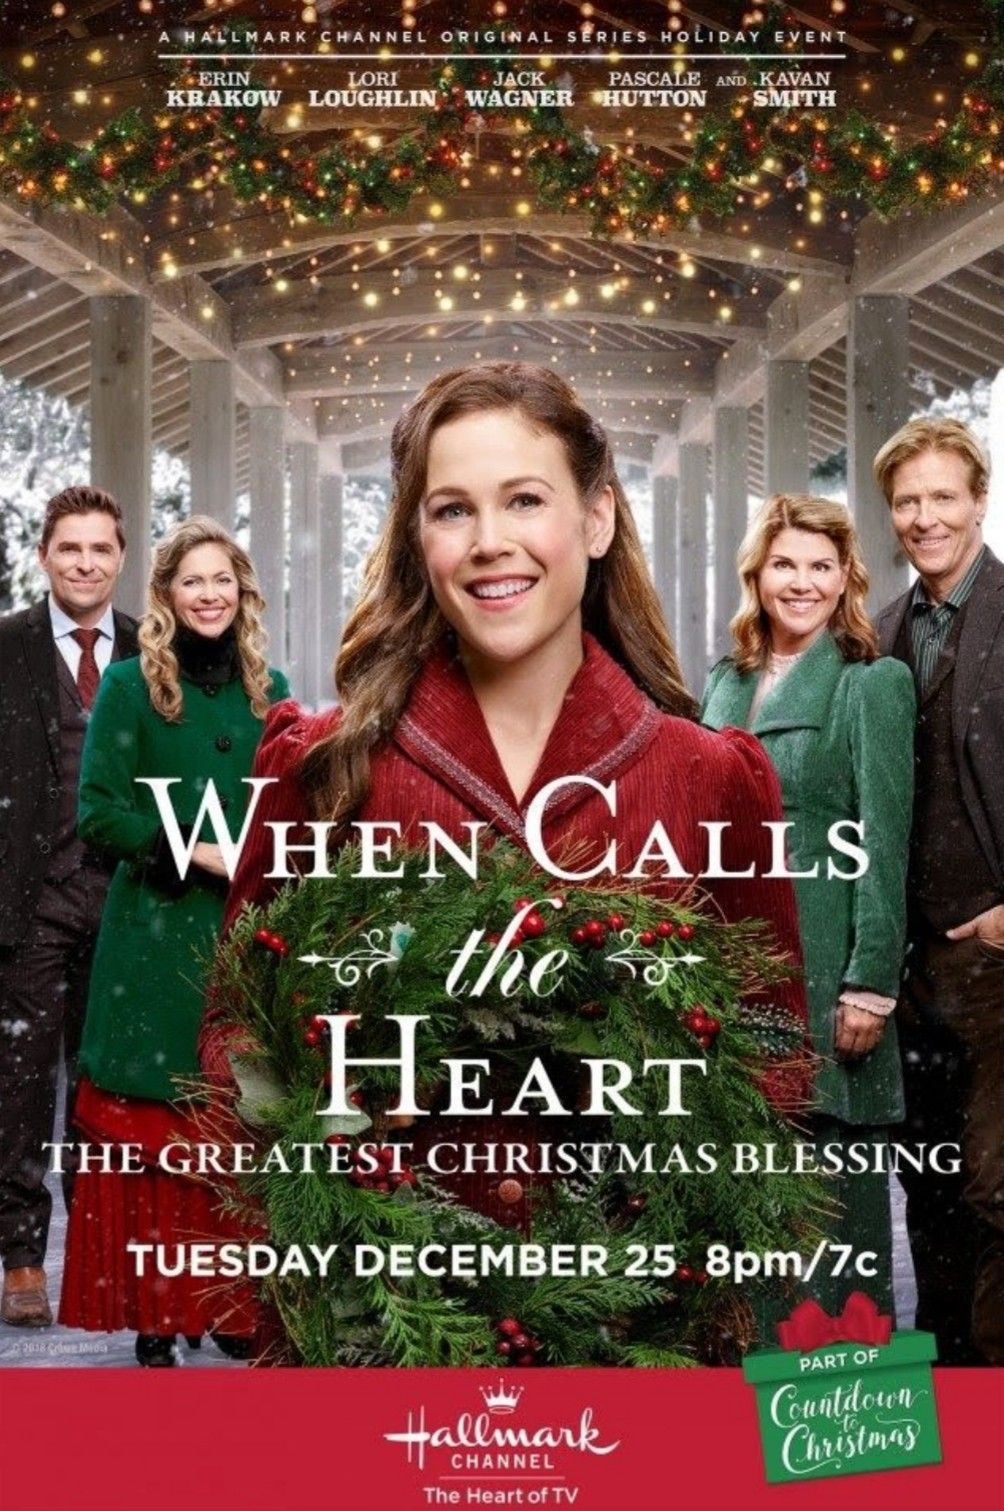 Watch When Calls The Heart Christmas Special 2019 4. When Calls the Heart The Greatest Christmas Blessing (2018) Set